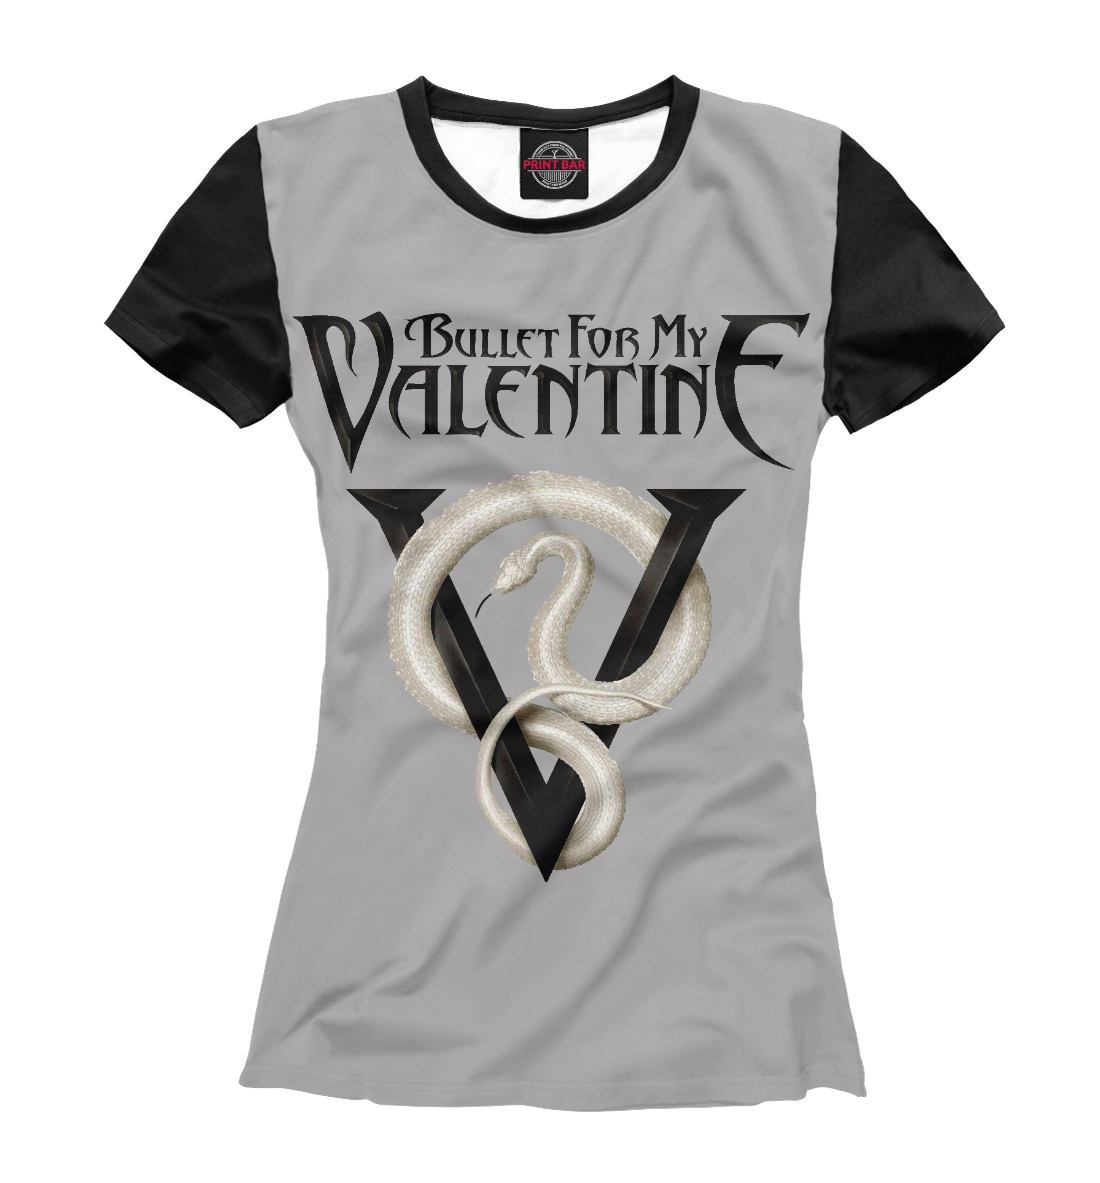 Купить Bullet for My Valentine Venom, Printbar, Футболки, BMV-399029-fut-1